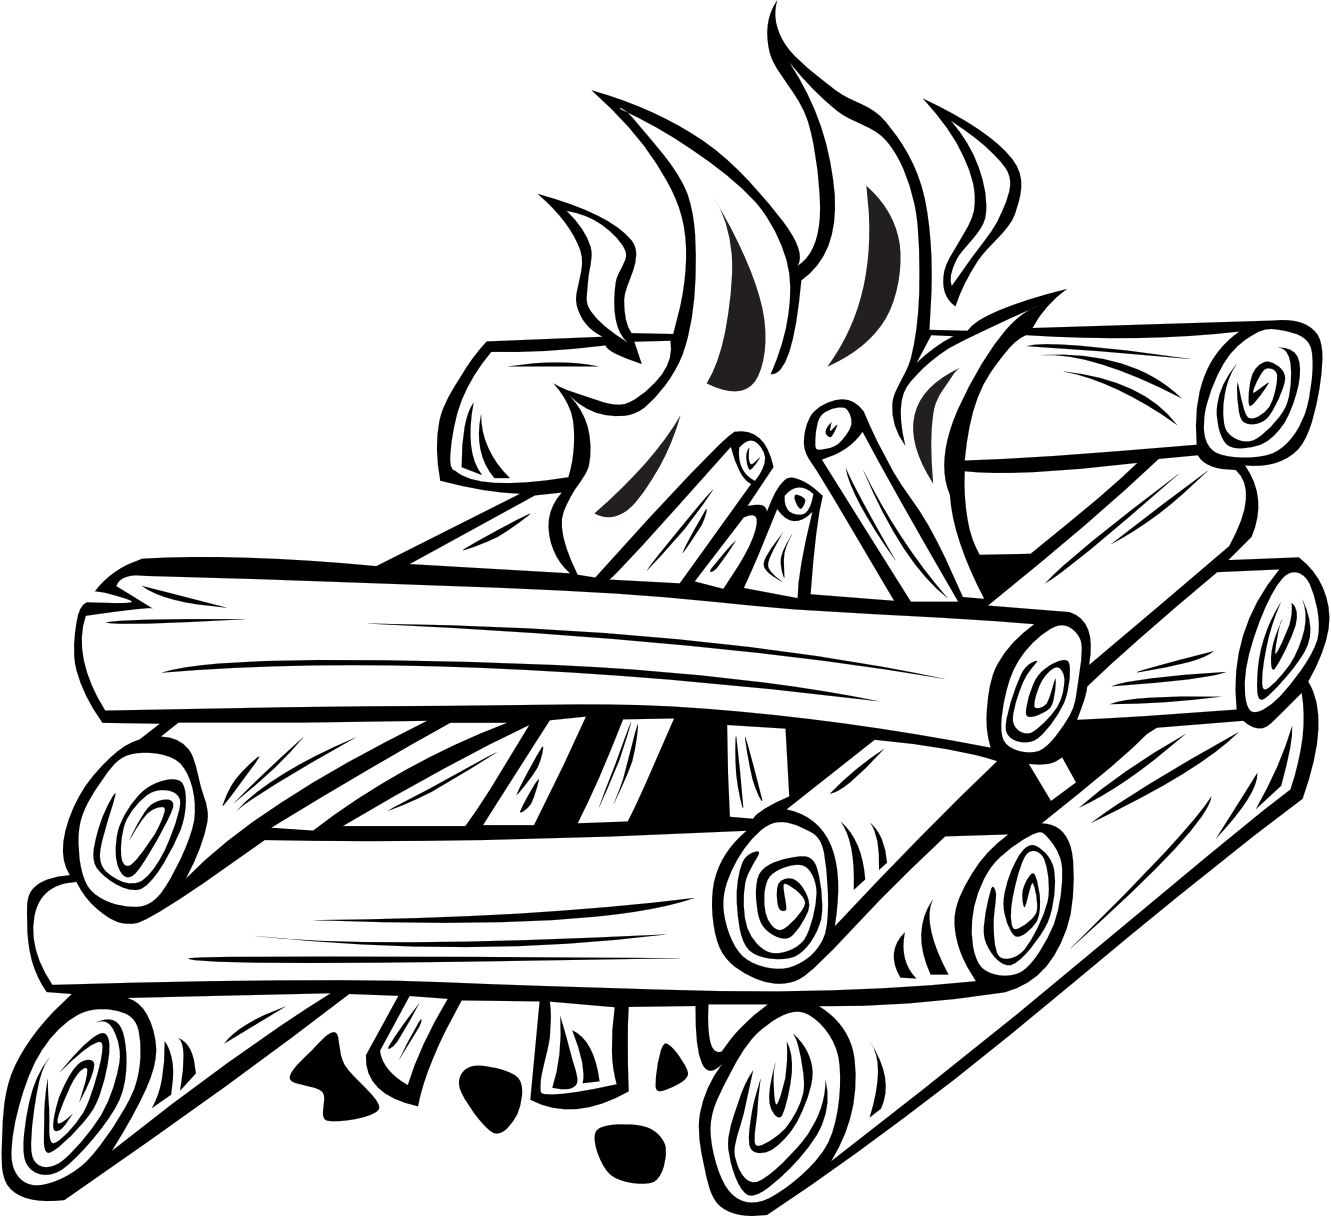 Clipart black and white fish oil picture free download Black And White Campfire Clipart | Clipart Panda - Free Clipart Images picture free download